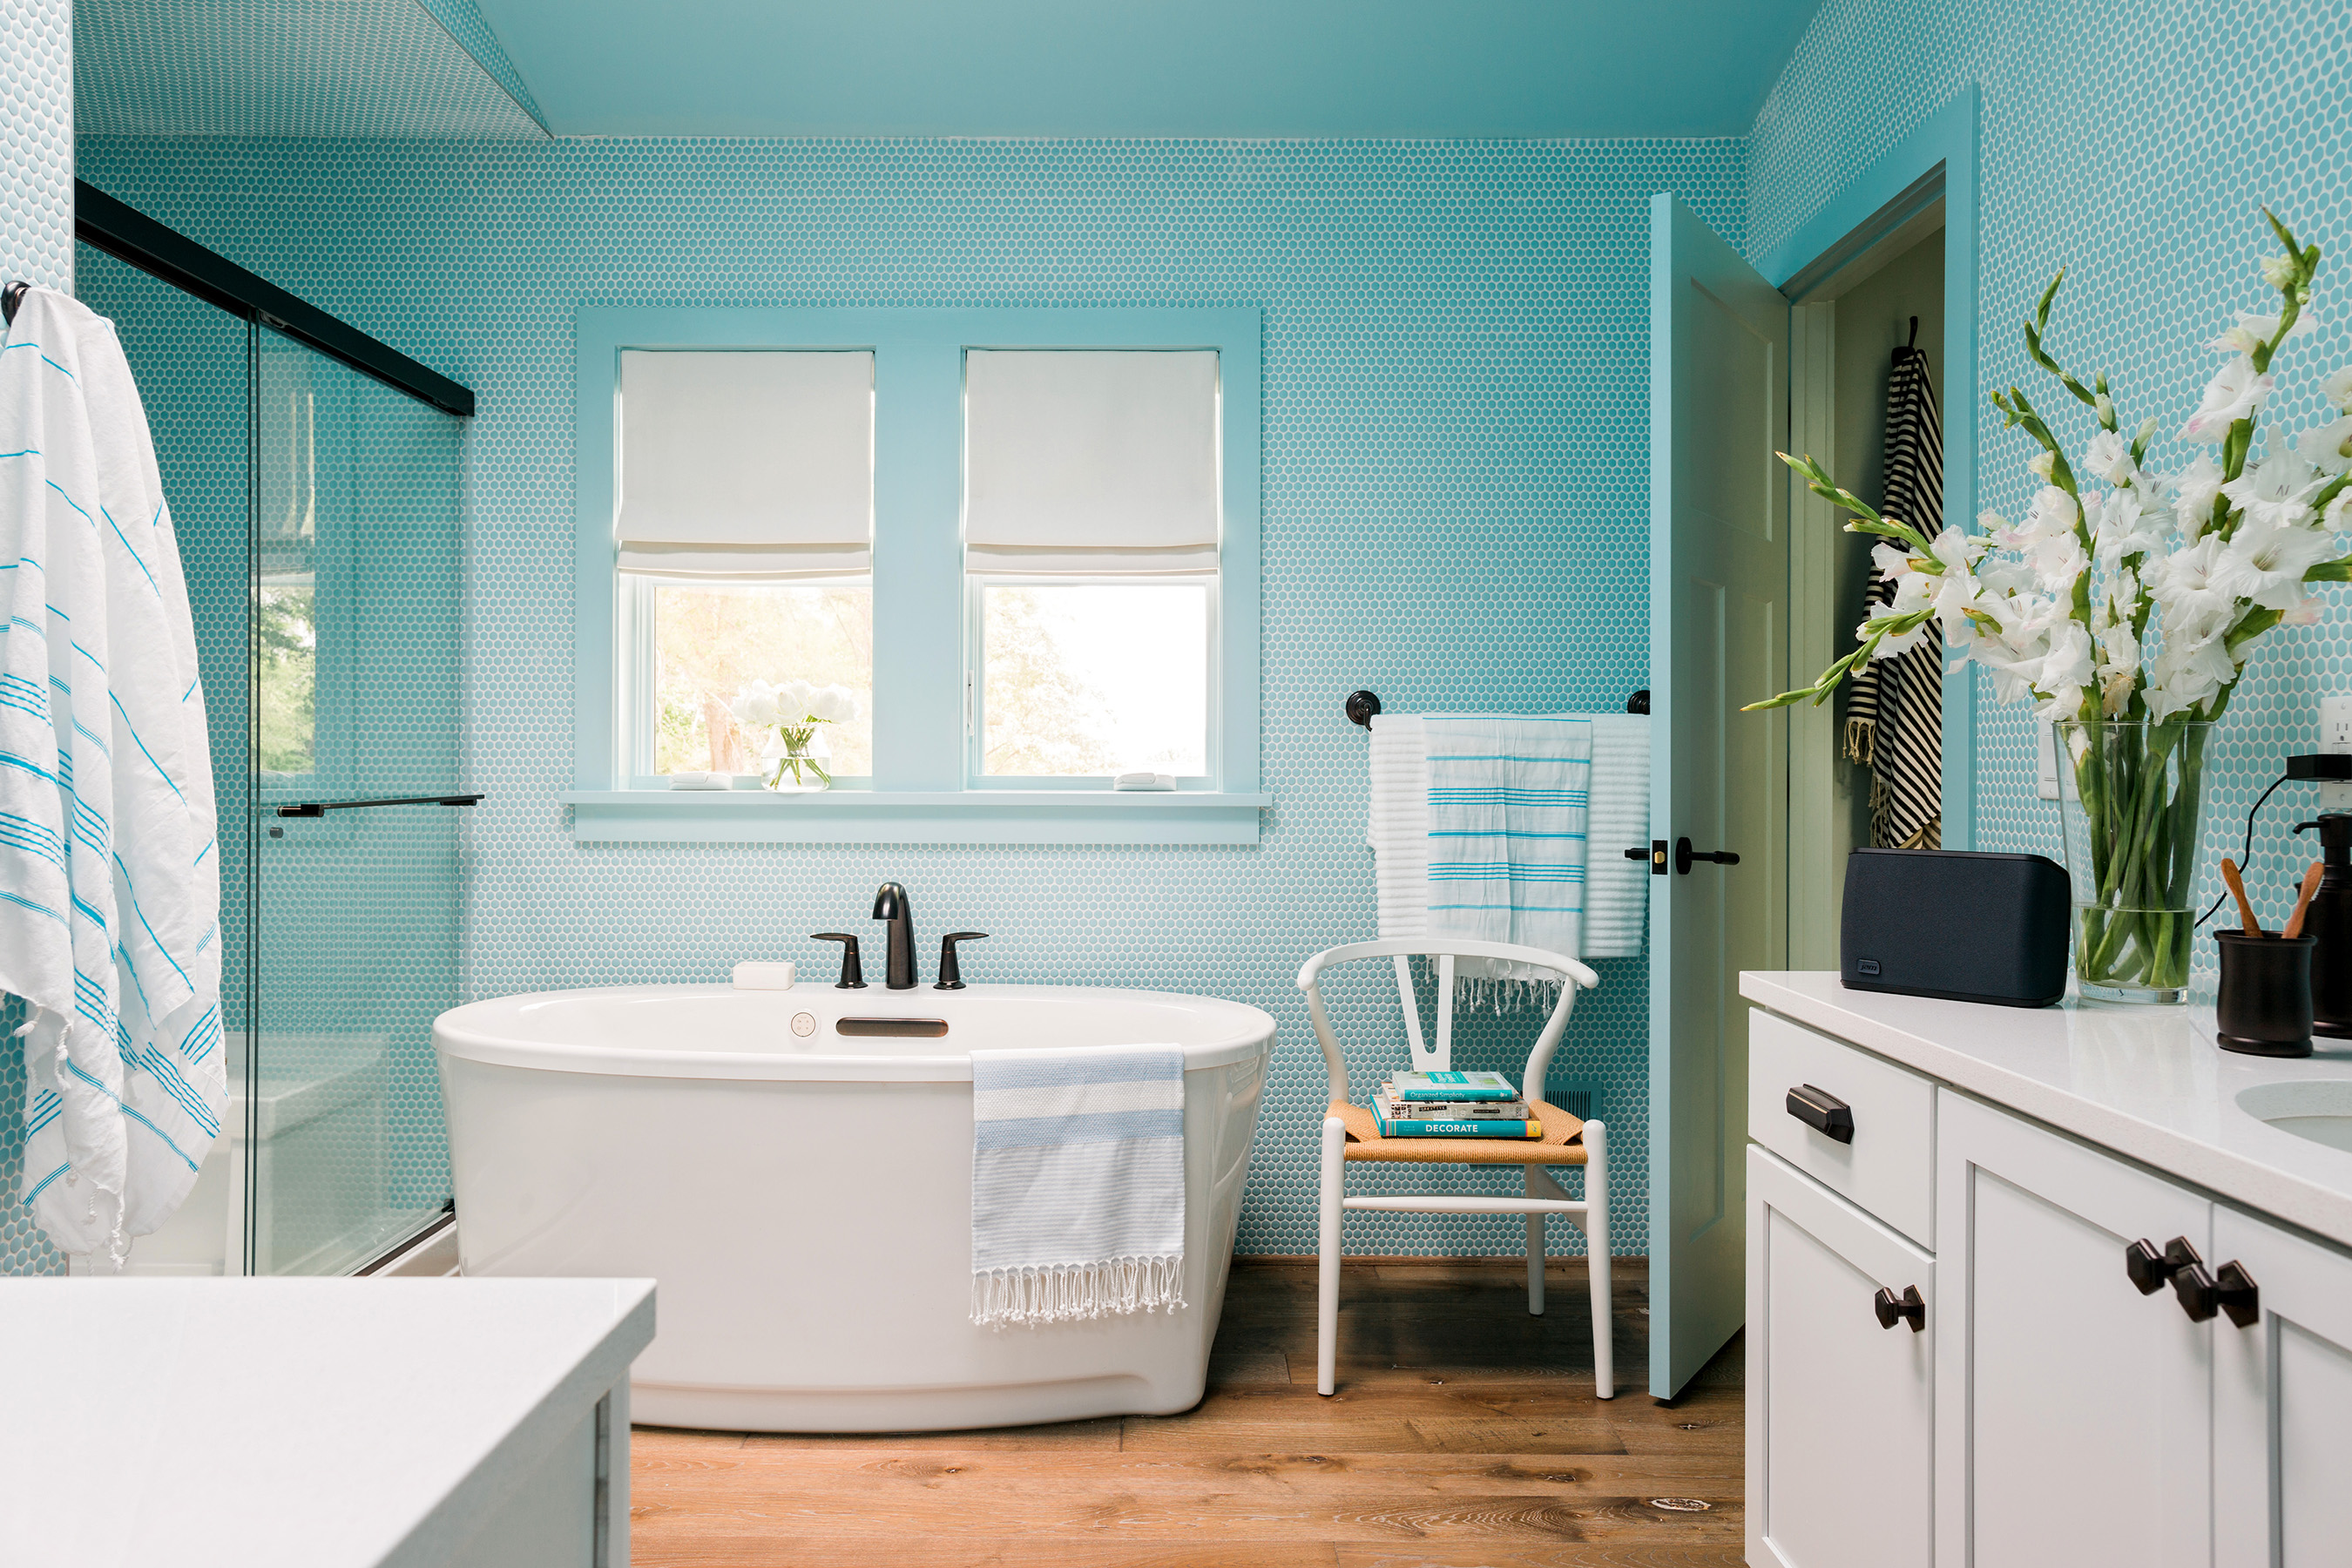 The private master bath of the HGTV Urban Oasis 2016 features floor-to-ceiling aqua-colored penny round tile, generous double vanities, a high-tech shower and a luxurious soaking tub.